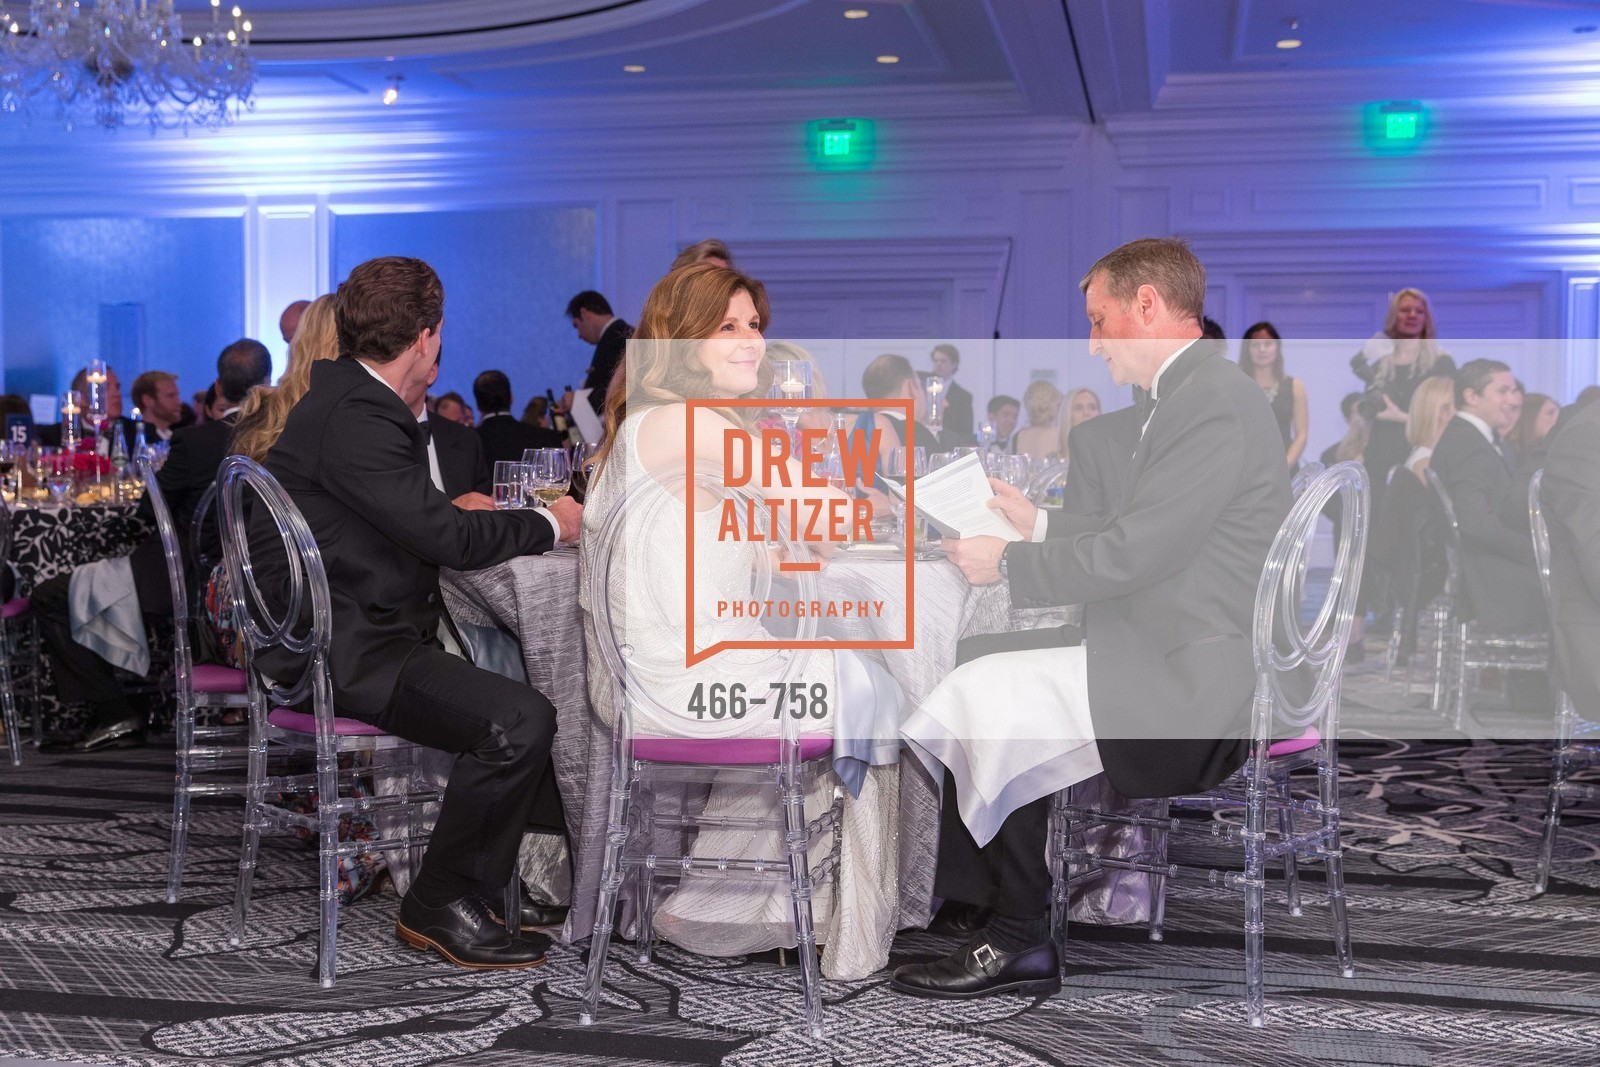 Beth Wiesbrock, JUVENILE DIABETES RESEARCH FOUNDATION  Hope Gala, US, May 30th, 2015,Drew Altizer, Drew Altizer Photography, full-service agency, private events, San Francisco photographer, photographer california